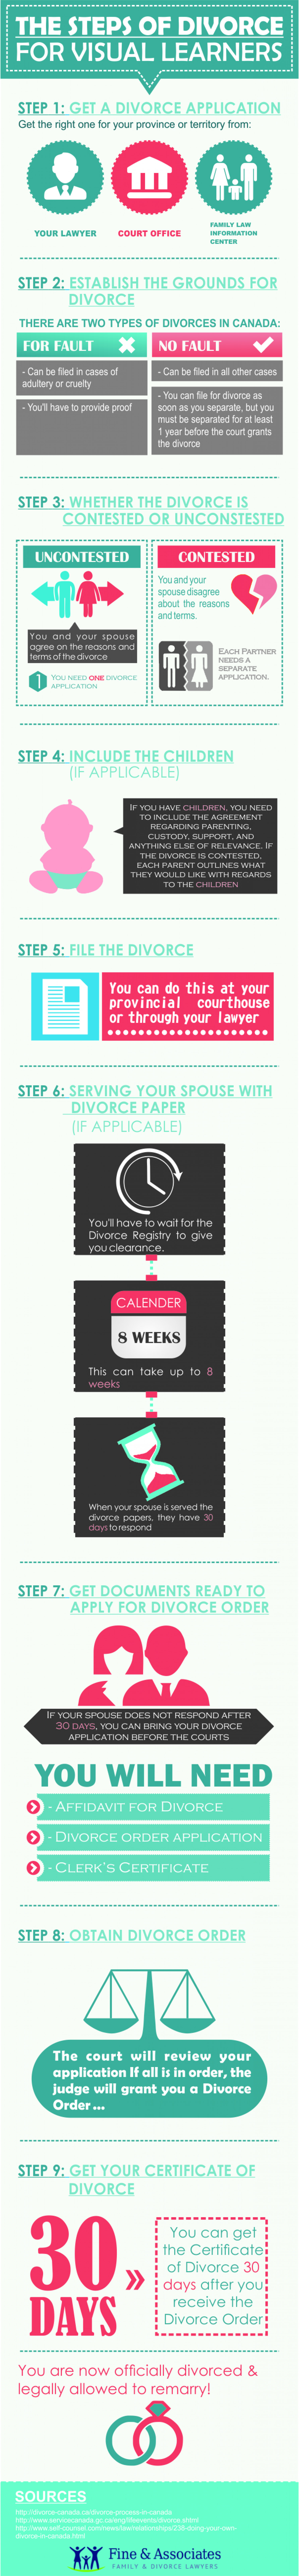 The Steps Of Divorce Infographic